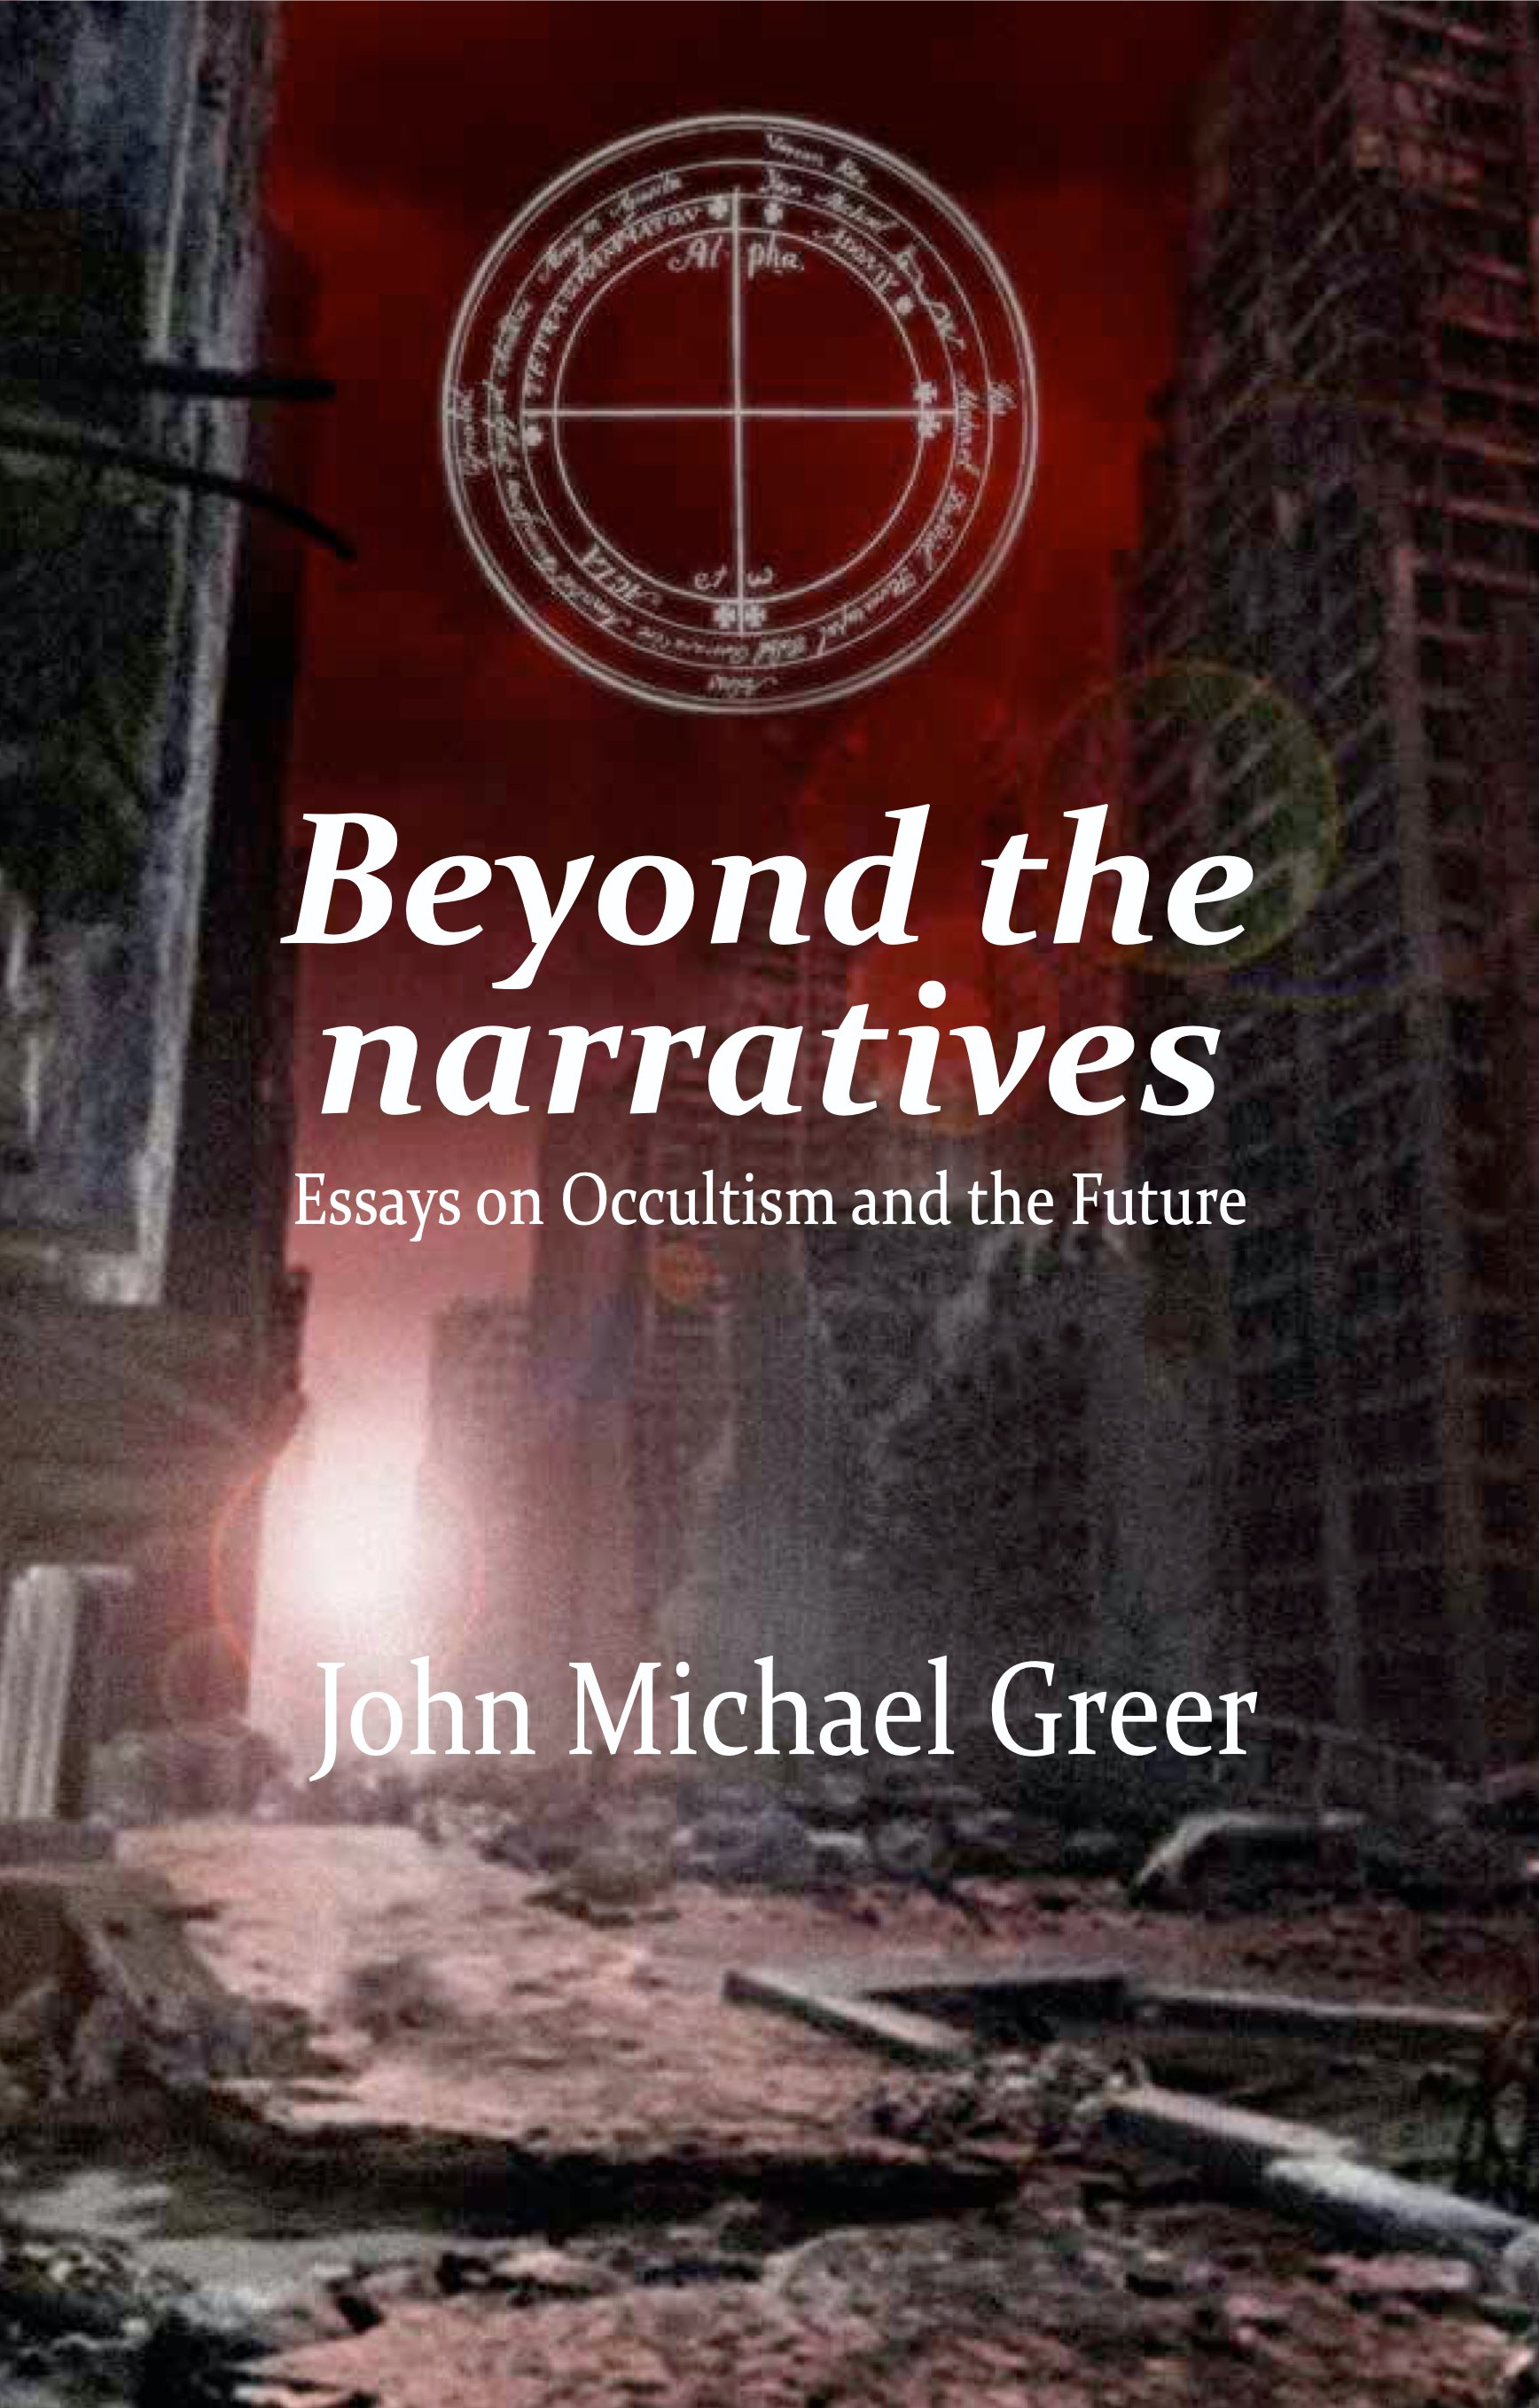 Beyond the Narratives: Essays on Occultism and the Future